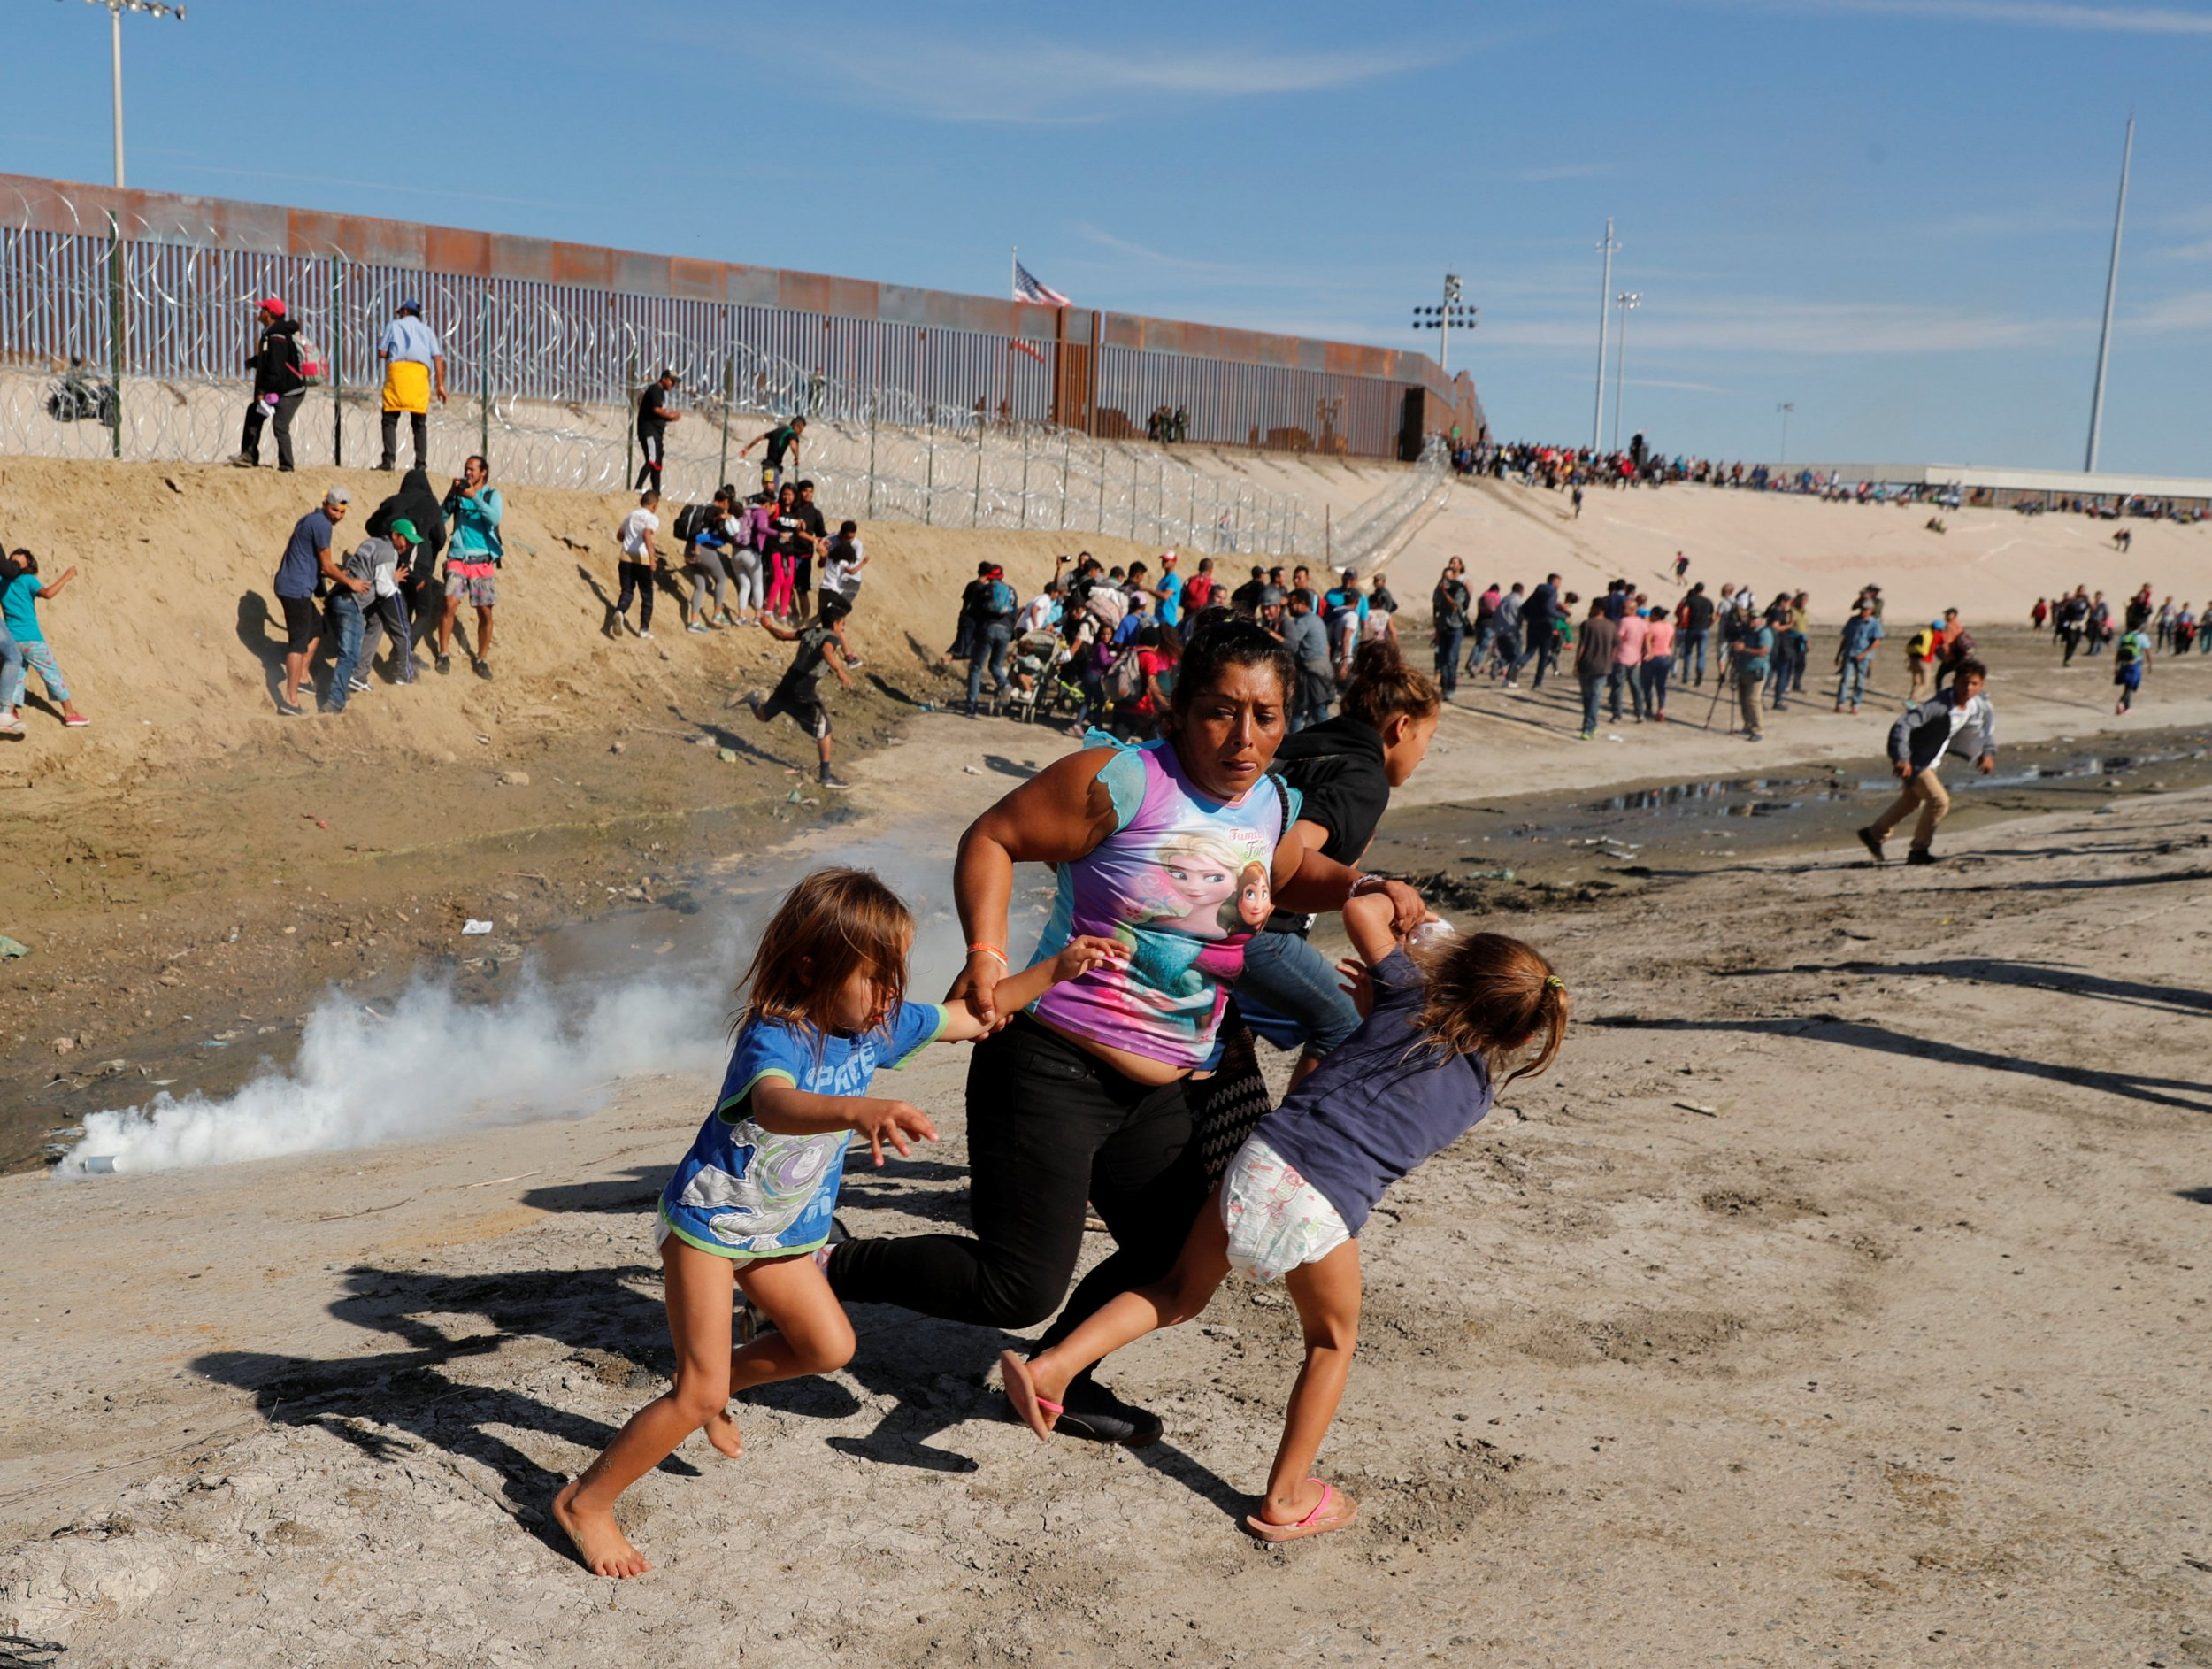 A migrant family, part of a caravan of thousands traveling from Central America en route to the United States, run away from tear gas in front of the border wall between the U.S and Mexico in Tijuana, Mexico November 25, 2018. REUTERS/Kim Kyung-Hoon